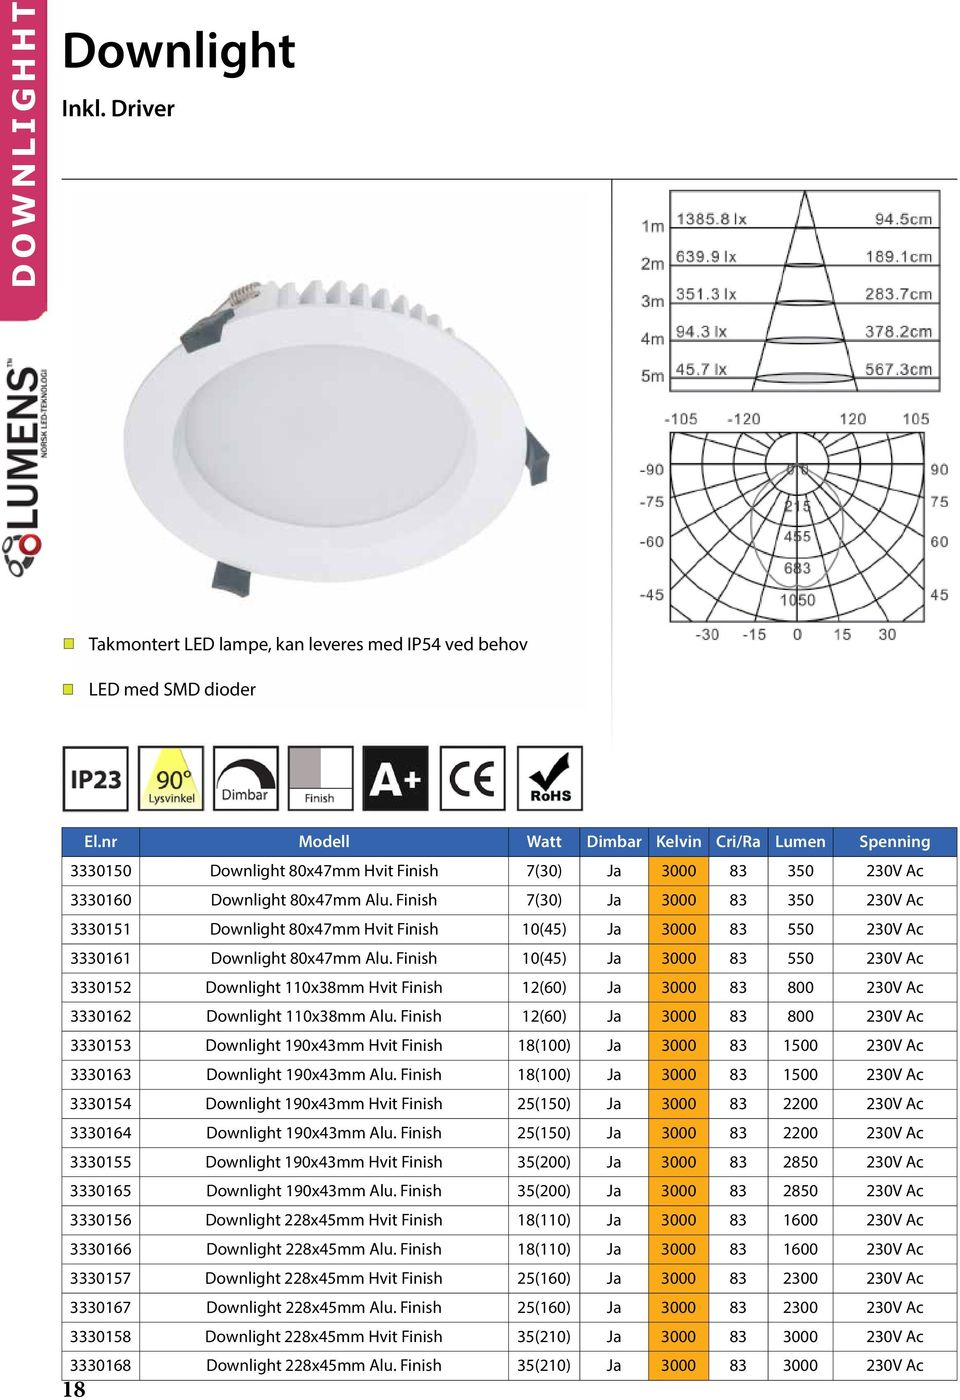 Finish 7(30) Ja 3000 83 350 230V Ac 3330151 Downlight 80x47mm Hvit Finish 10(45) Ja 3000 83 550 230V Ac 3330161 Downlight 80x47mm Alu.